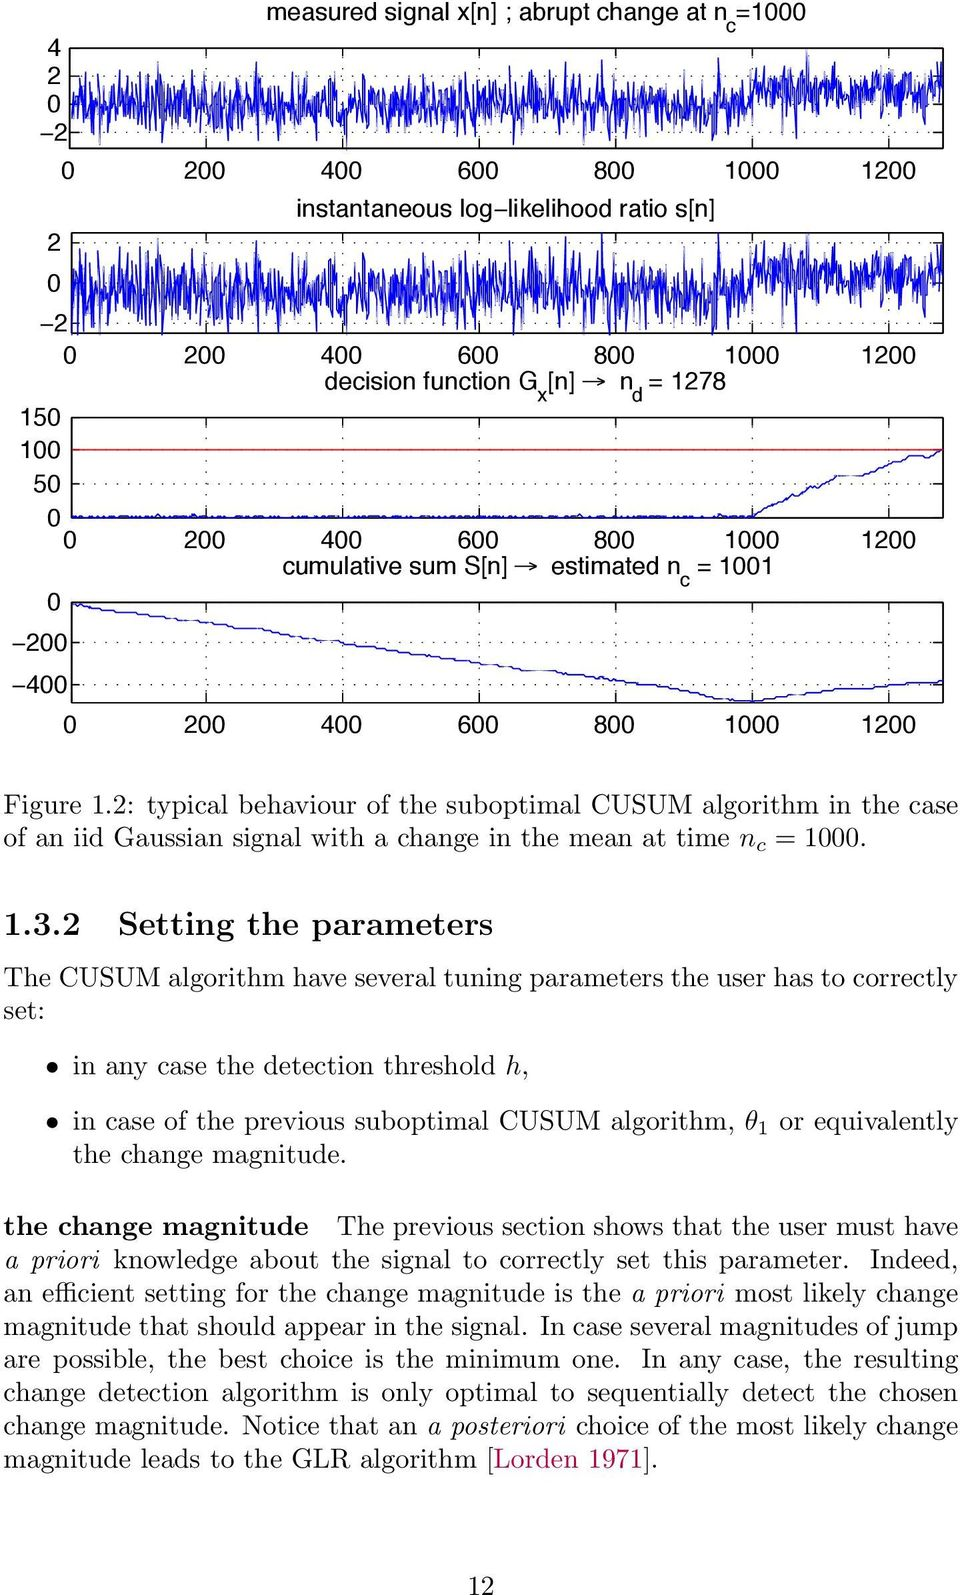 Setting the parameters The CUSUM algorithm have several tuning parameters the user has to correctly set: in any case the detection threshold h, in case of the previous suboptimal CUSUM algorithm, θ 1